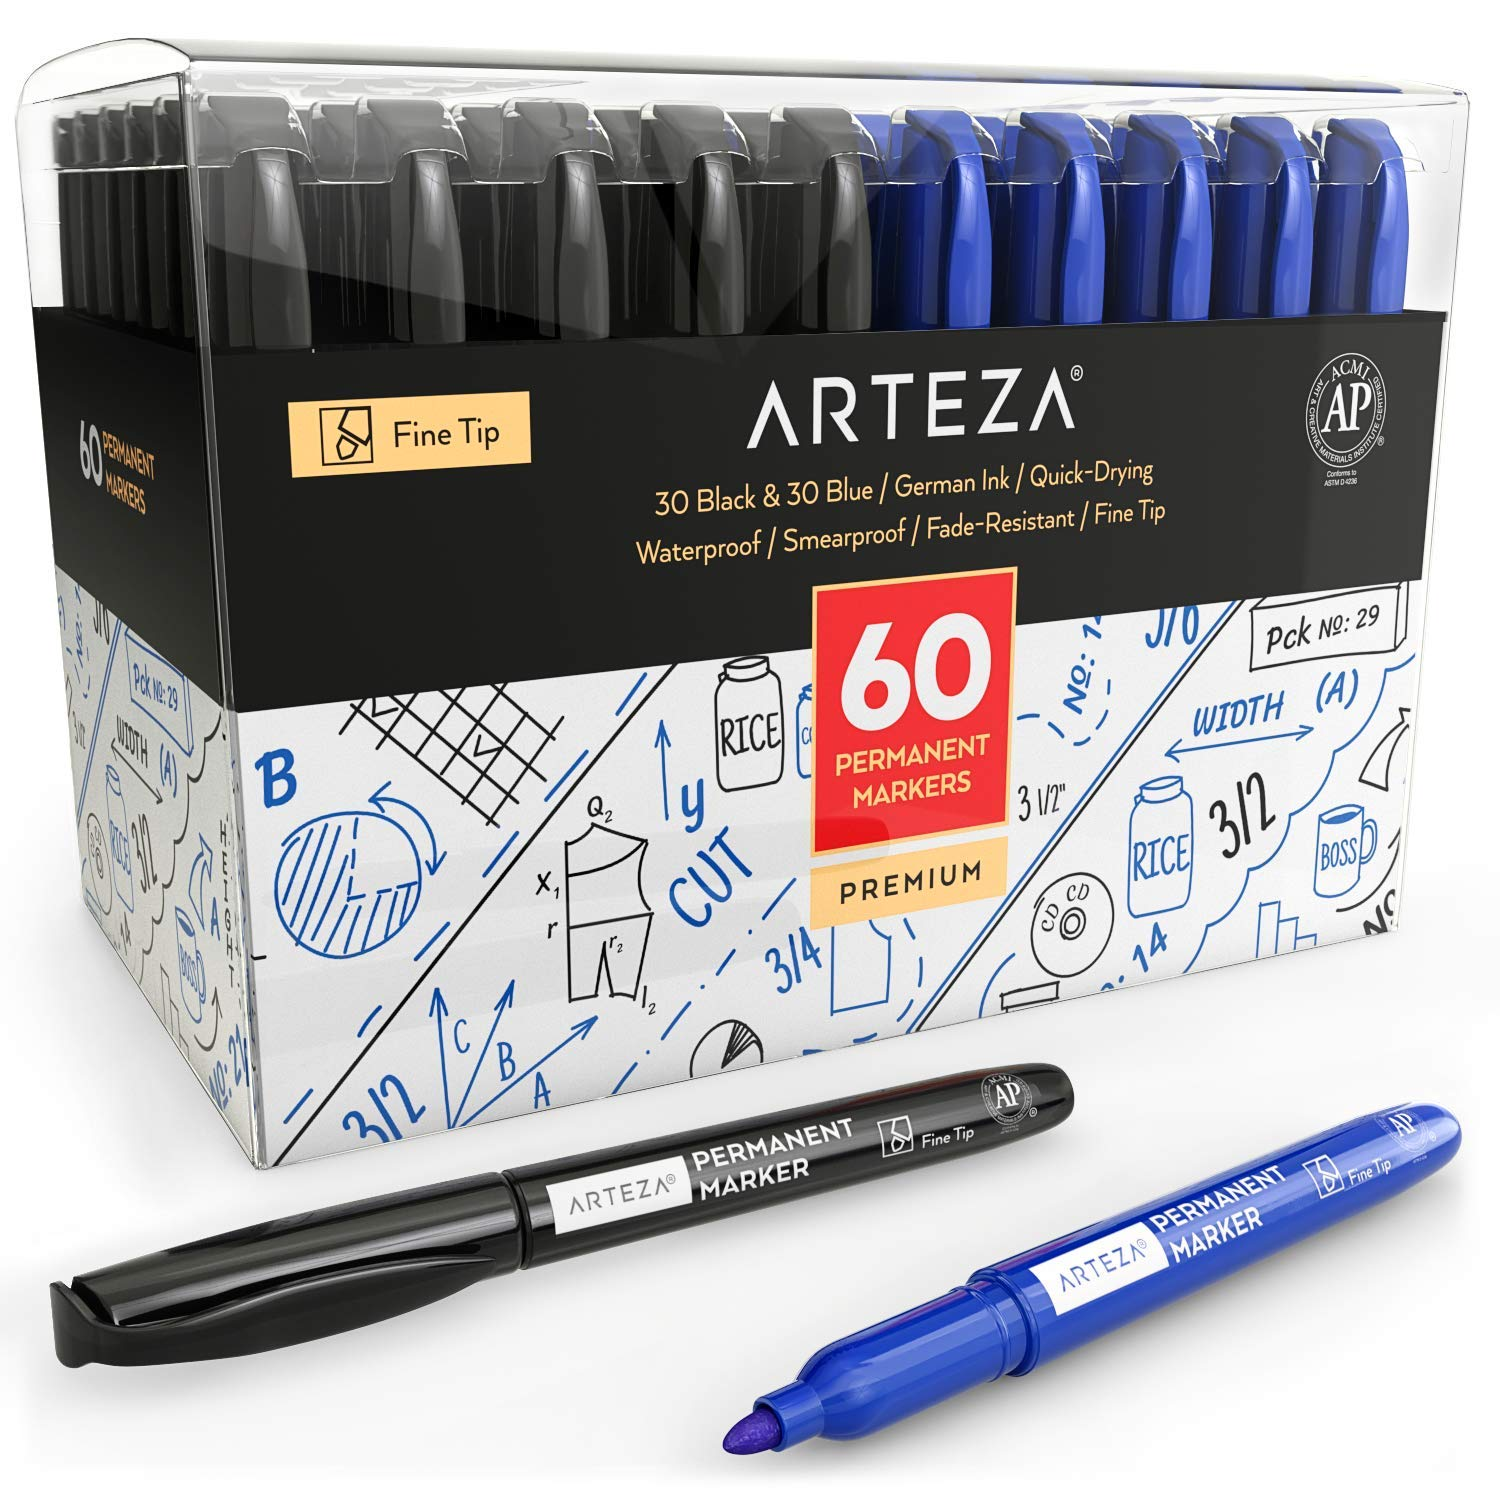 ARTEZA Permanent Markers Set of 60 (30 Black and 30 Blue, Fine Tip) - Quick Drying - Waterproof - Premium Quality Permanent Marker Fine Tip Pens